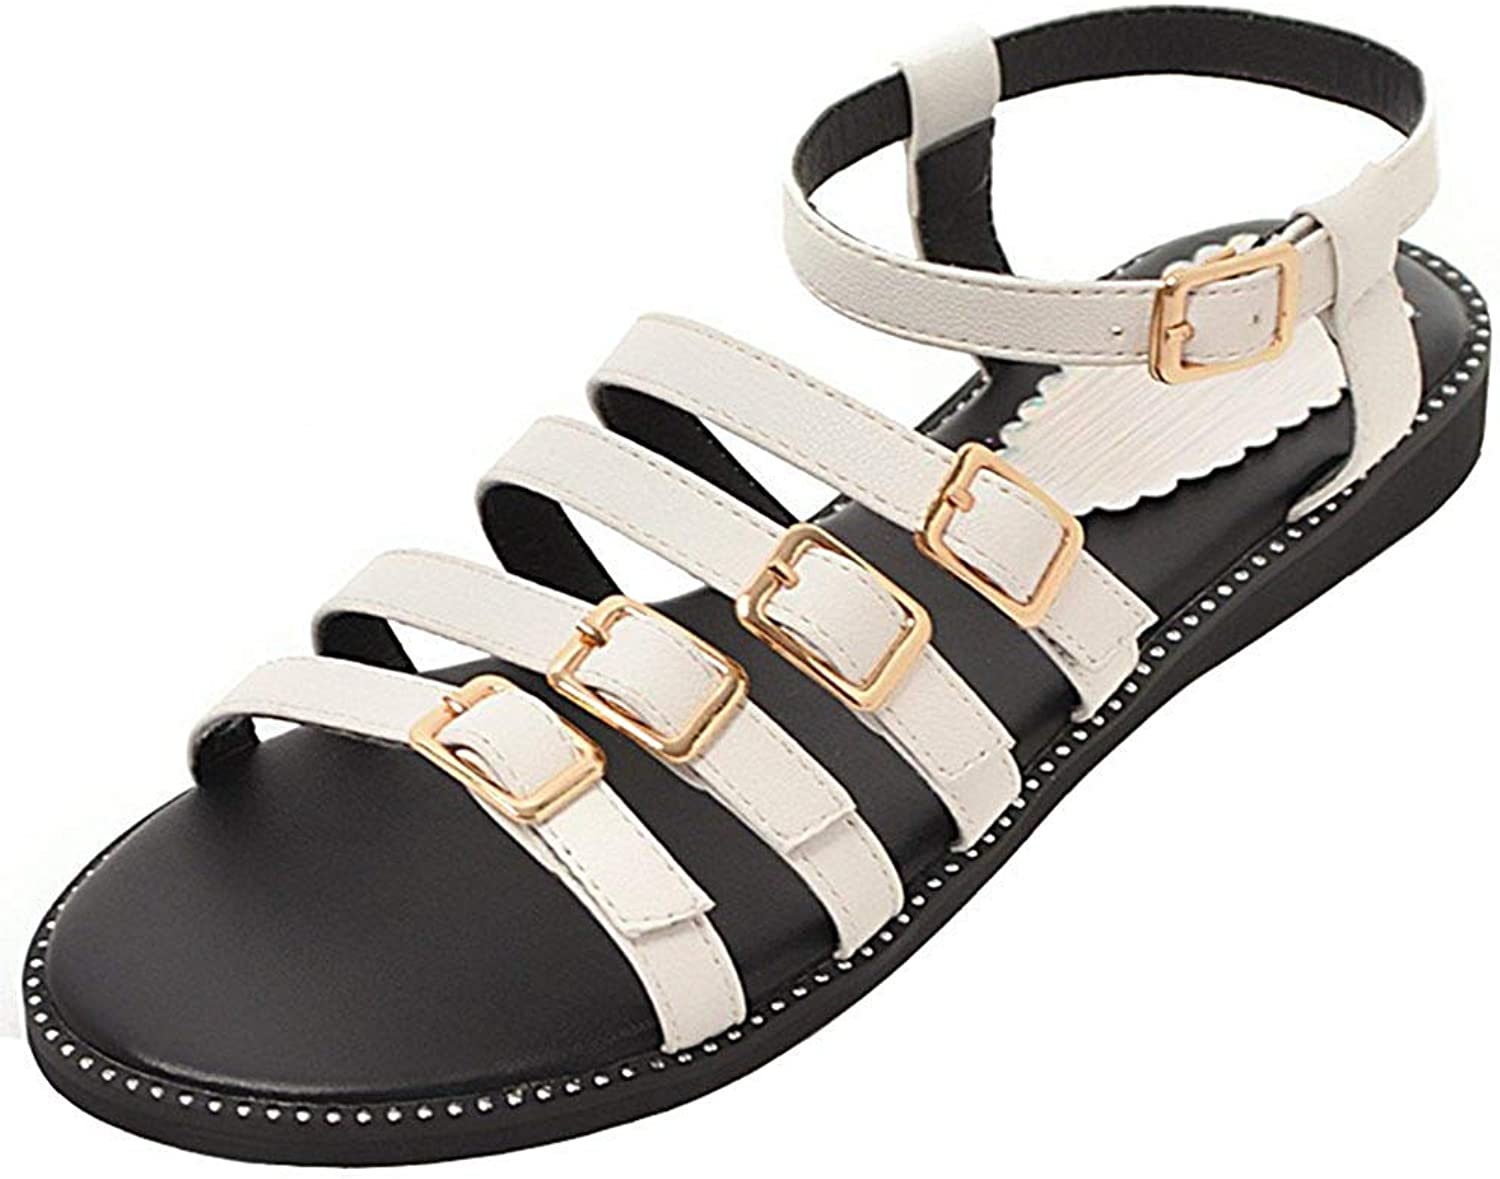 Wallhewb Women's Casual Strappy Sandals - Buckle Ankle Strap Solid color - Flats Gladiators shoes Leather Dress Short Overlapping Sweet Rubber Sole Breathable Dexterous Apricot 7.5 M US Strap Sandals